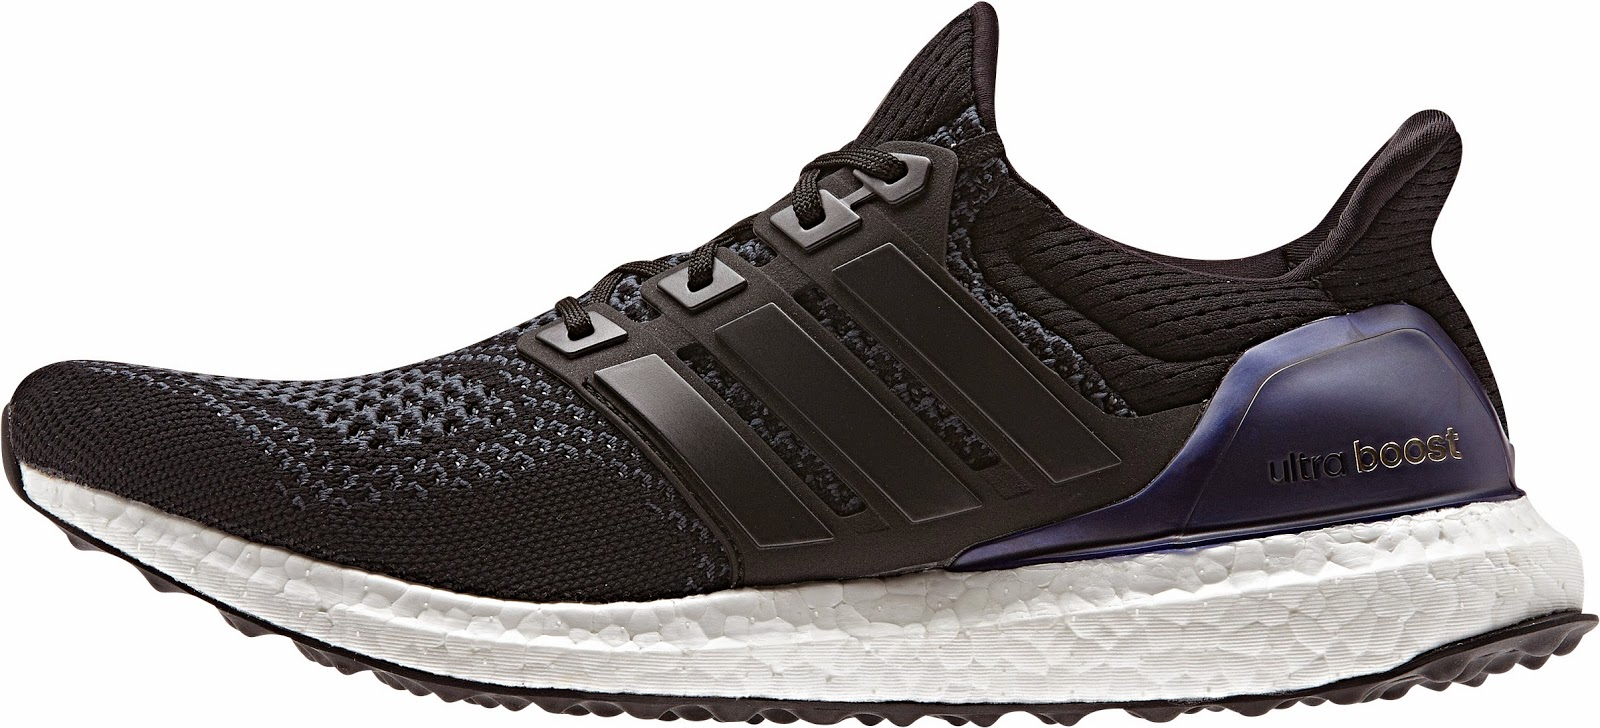 ebc75d460e5 Ultra BOOST combines the most innovative and fully adaptive technologies to  deliver your greatest run ever!